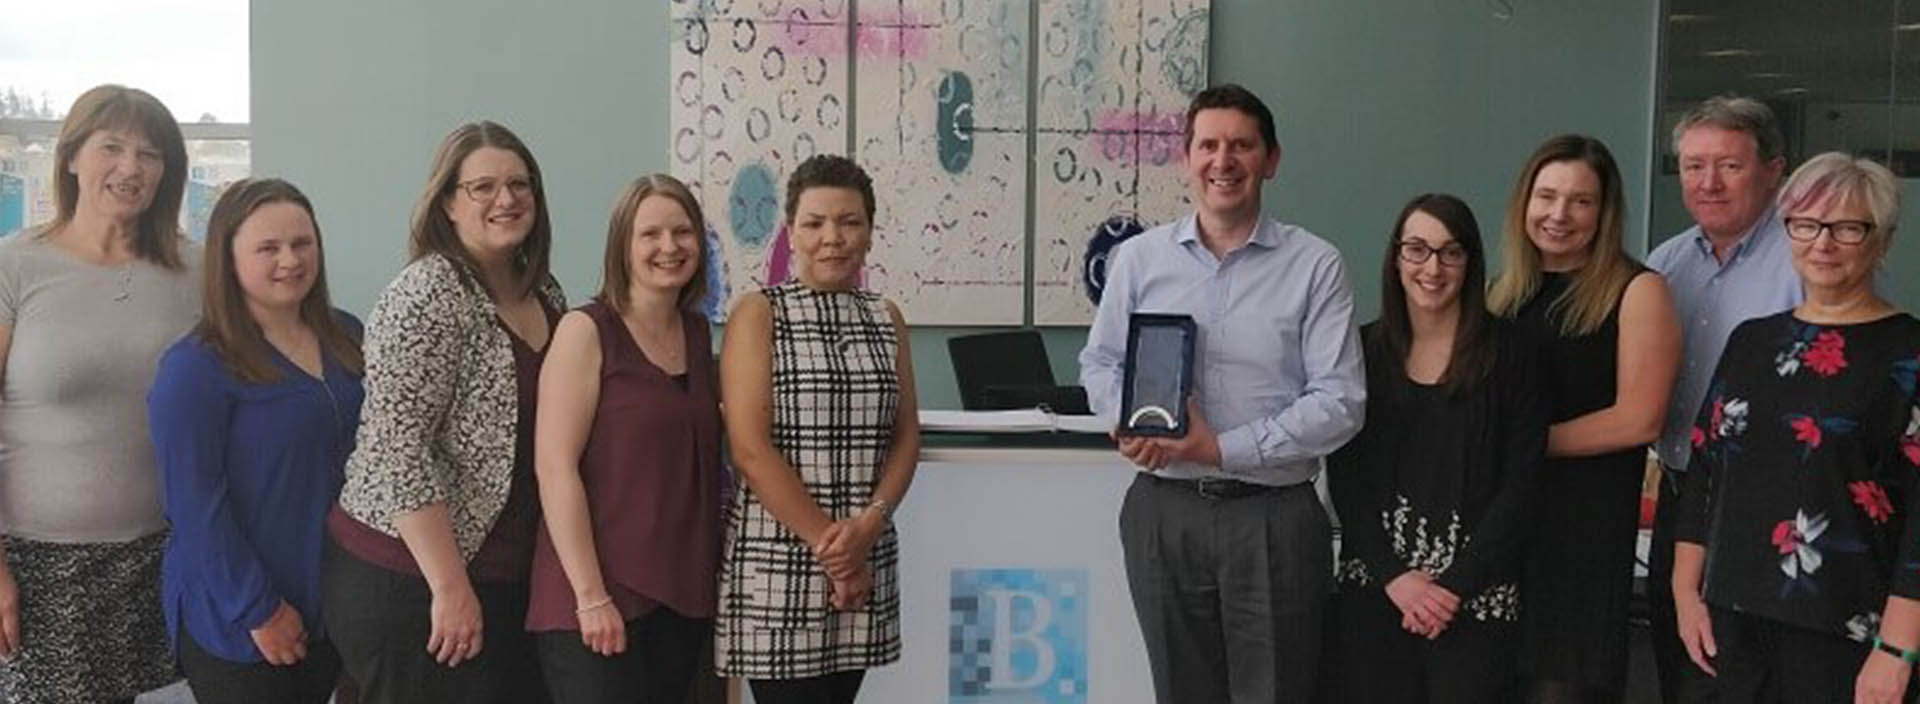 Balhousie Care Group finance director scoops national award